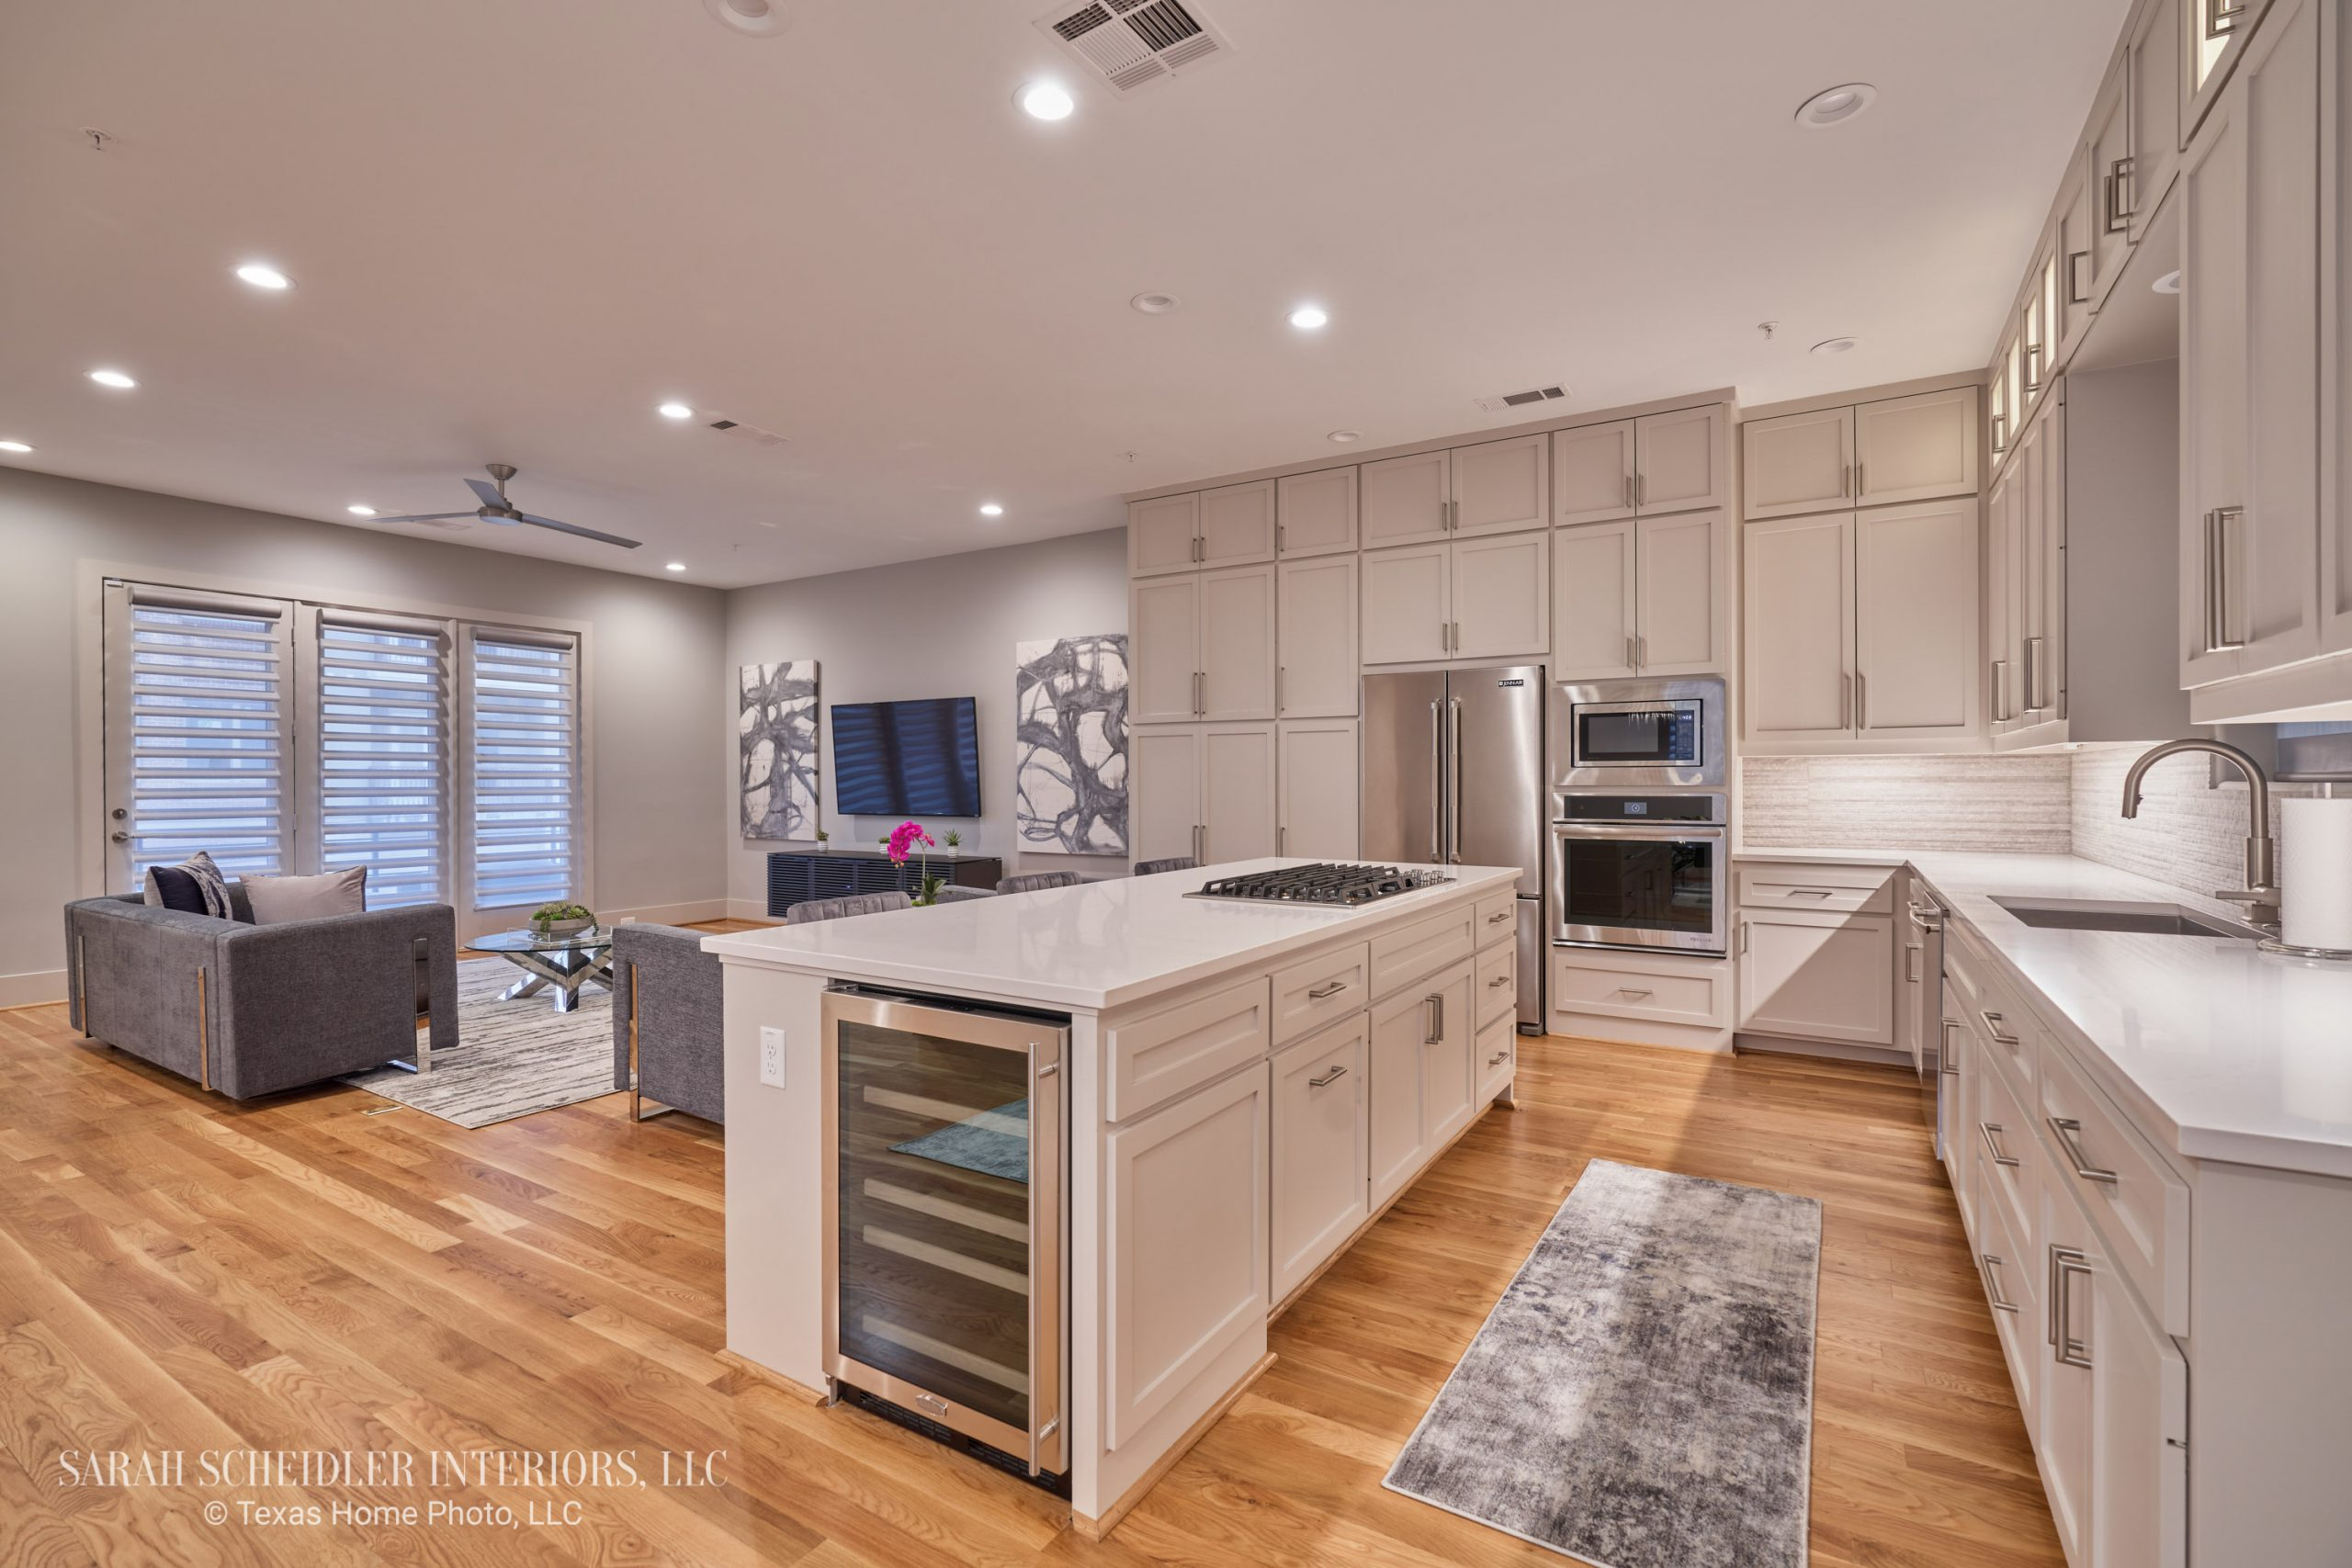 Modern Open-Concept Kitchen and Living Room Designs